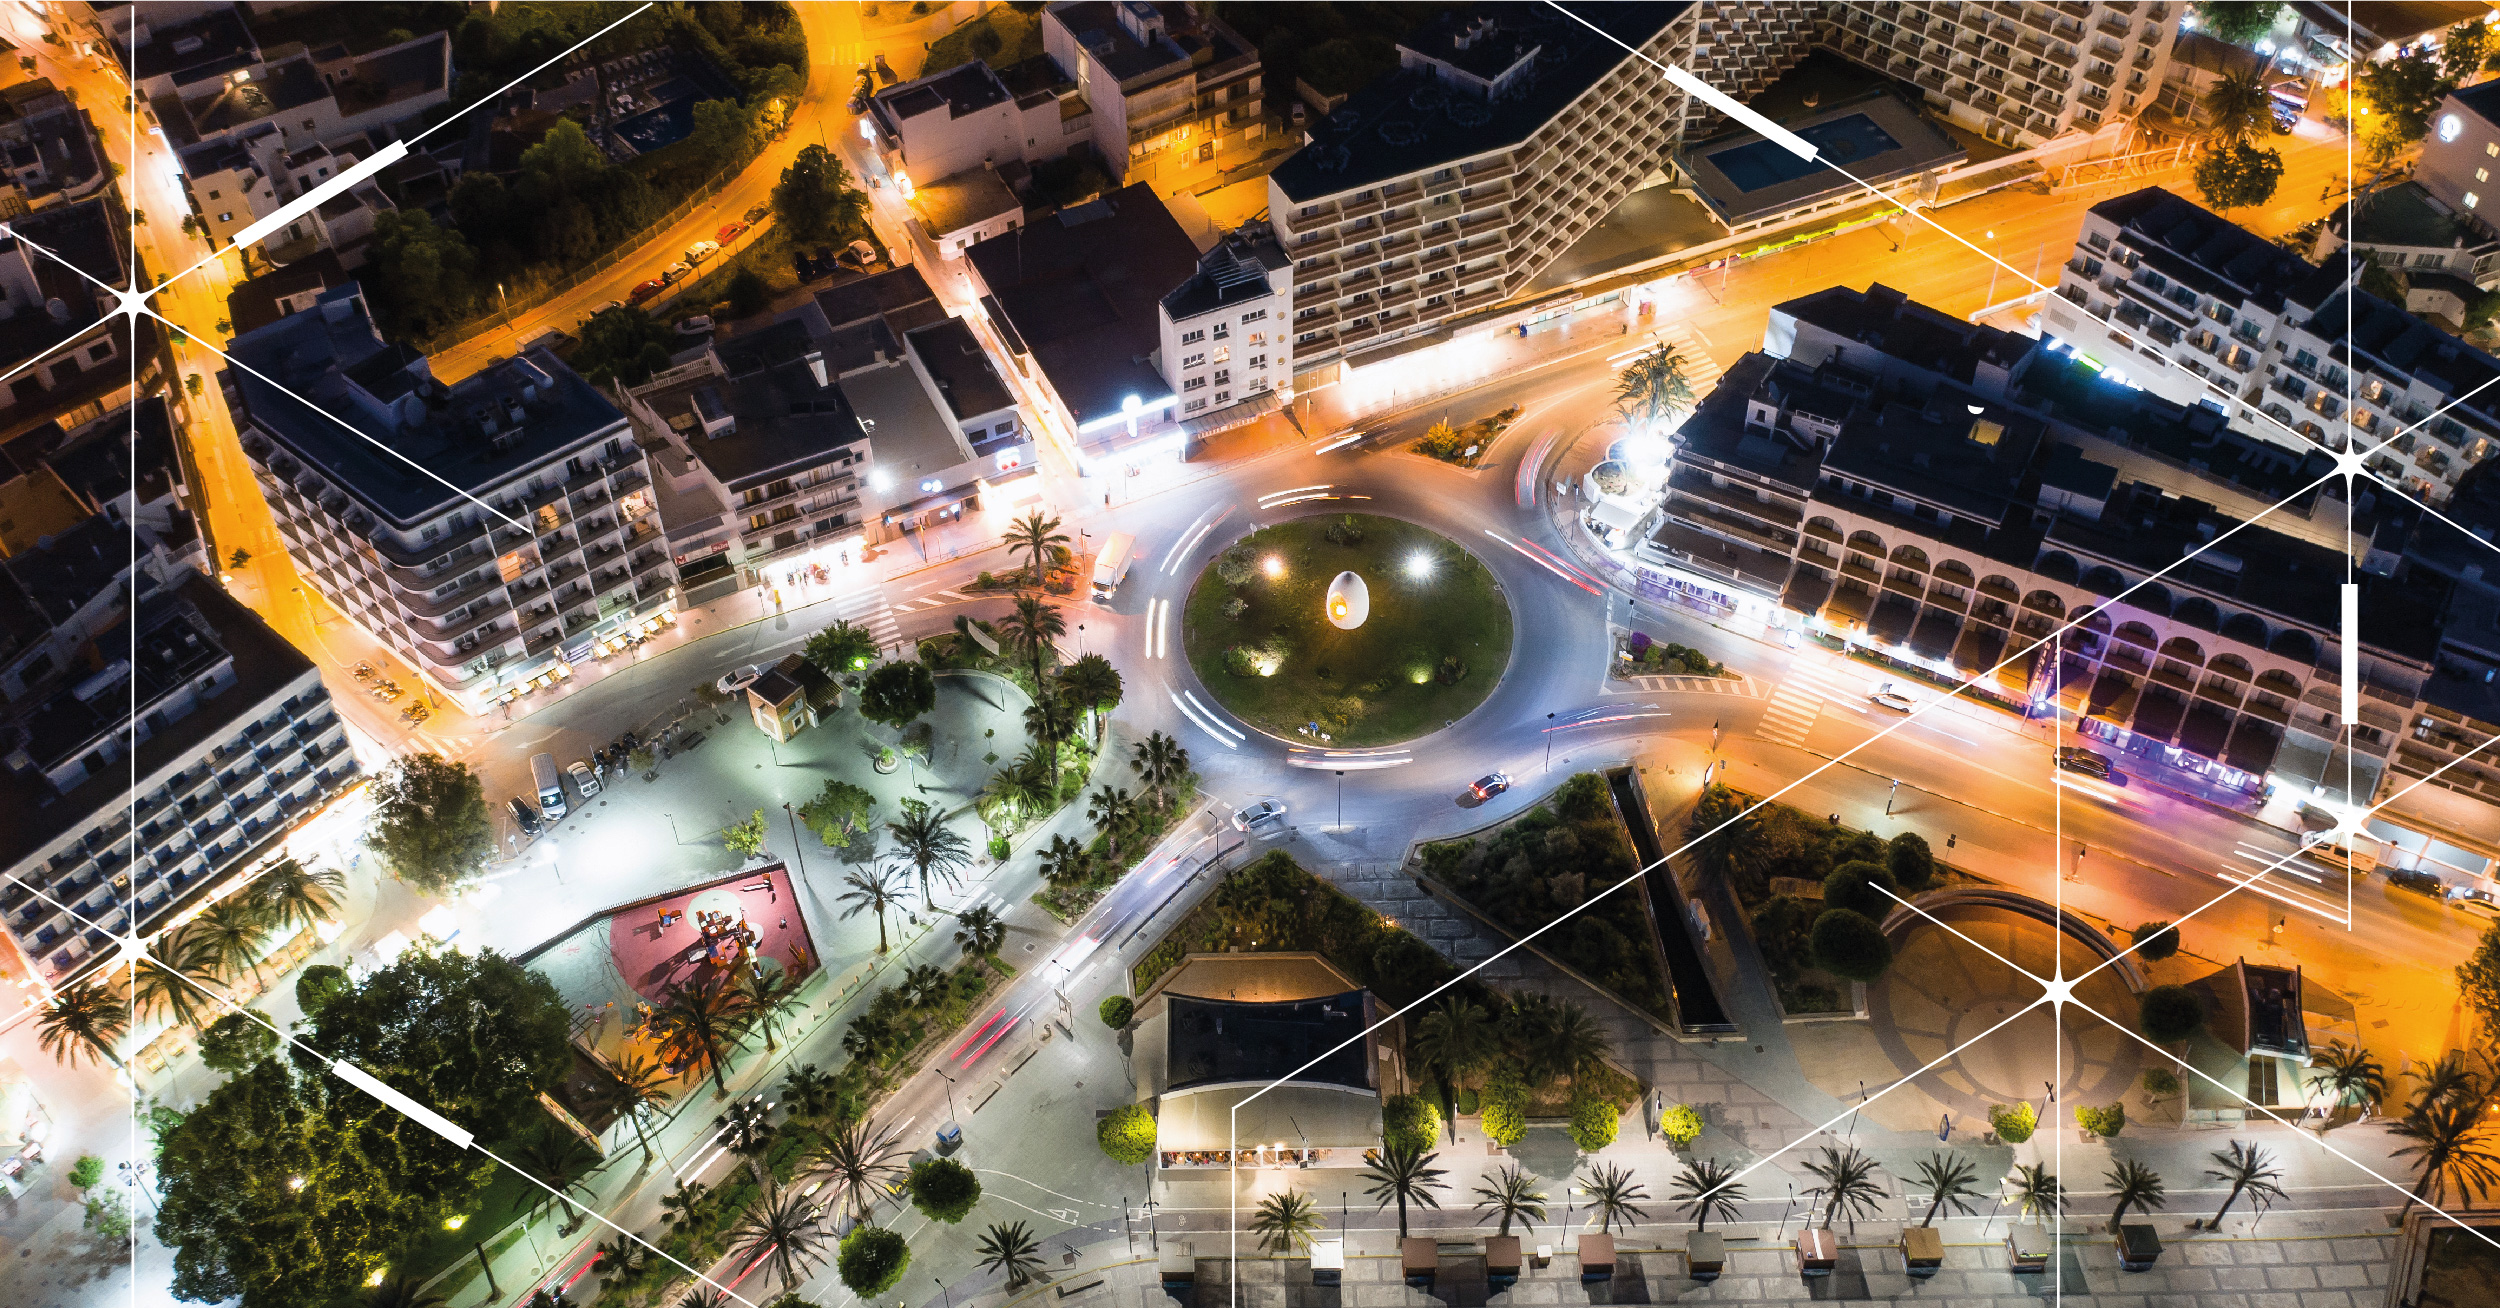 Flashnet's third-generation street lighting control software promises to be more than just an upgrade